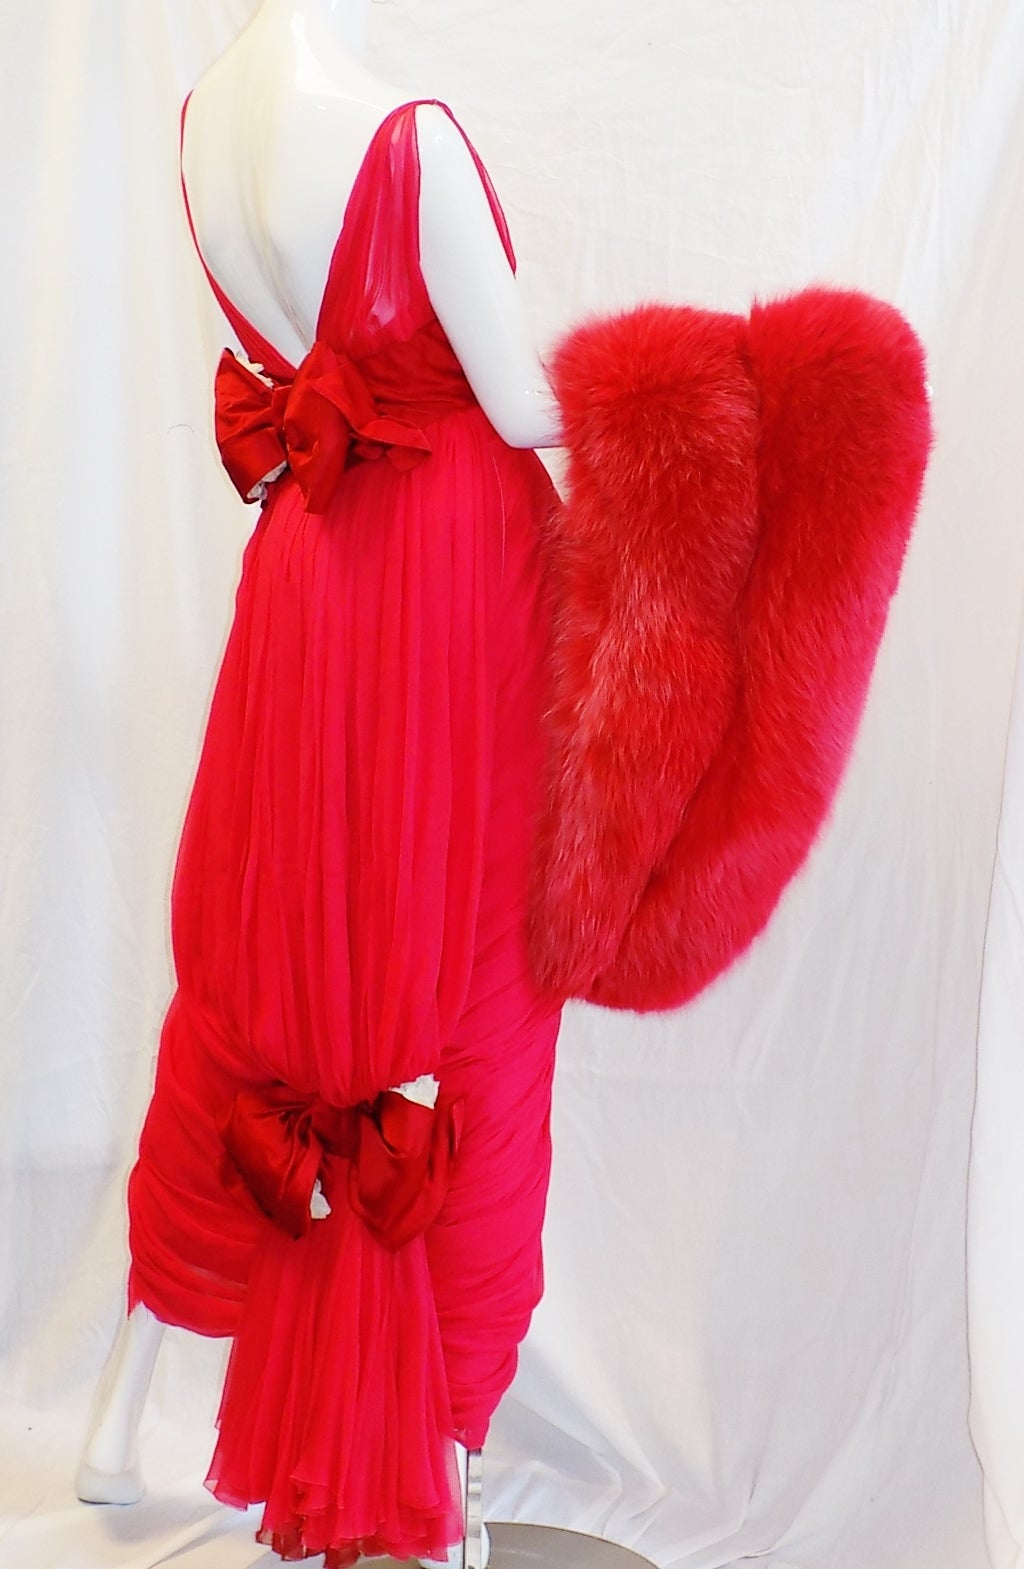 Iconic Jean Dessès Red draped gown with Fox fur stole 1950's 9